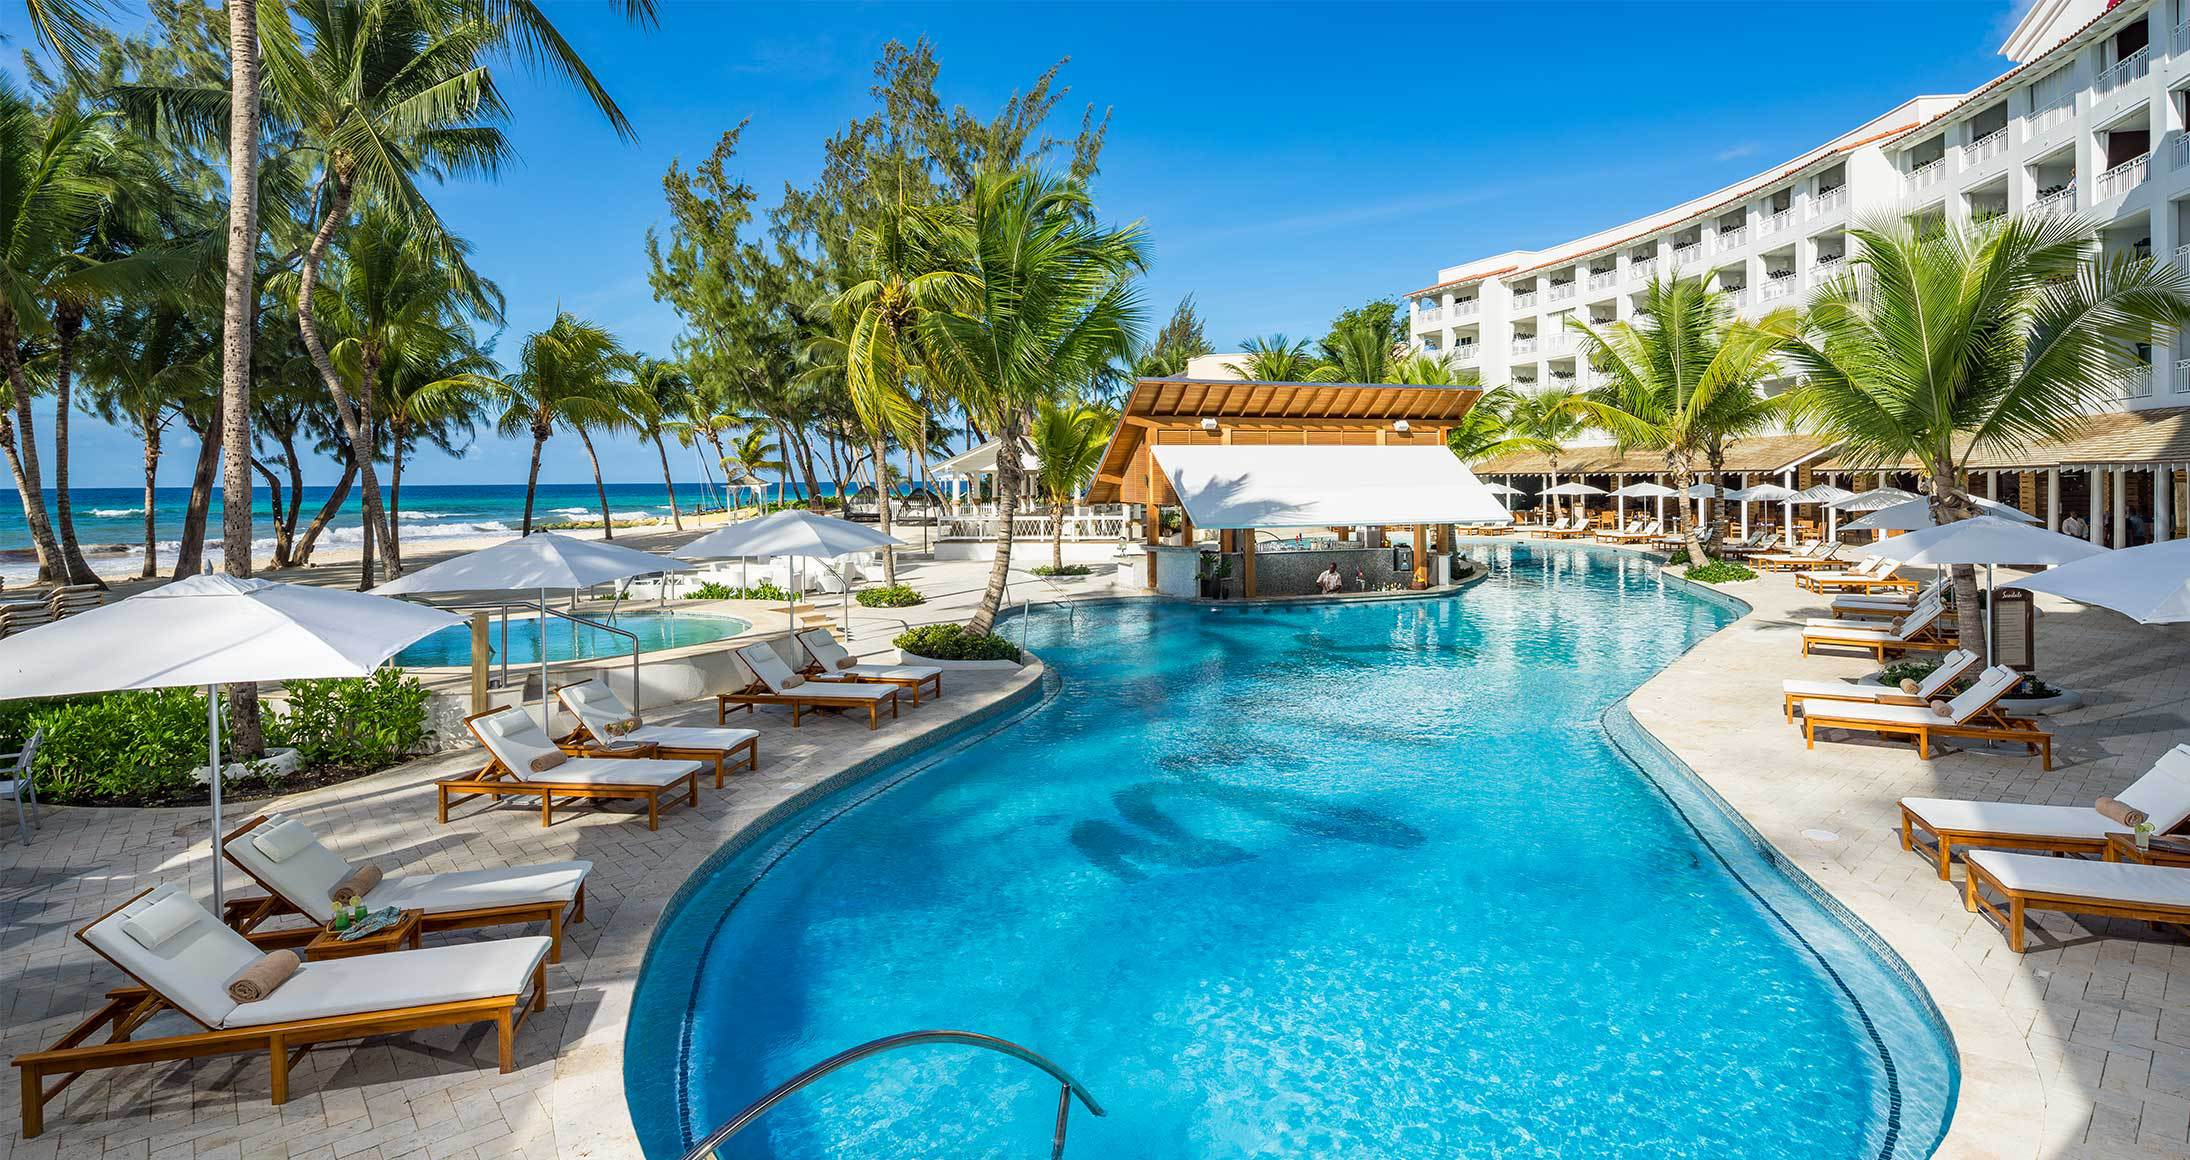 Sandals Barbados - All-Inclusive Luxury Resort in St